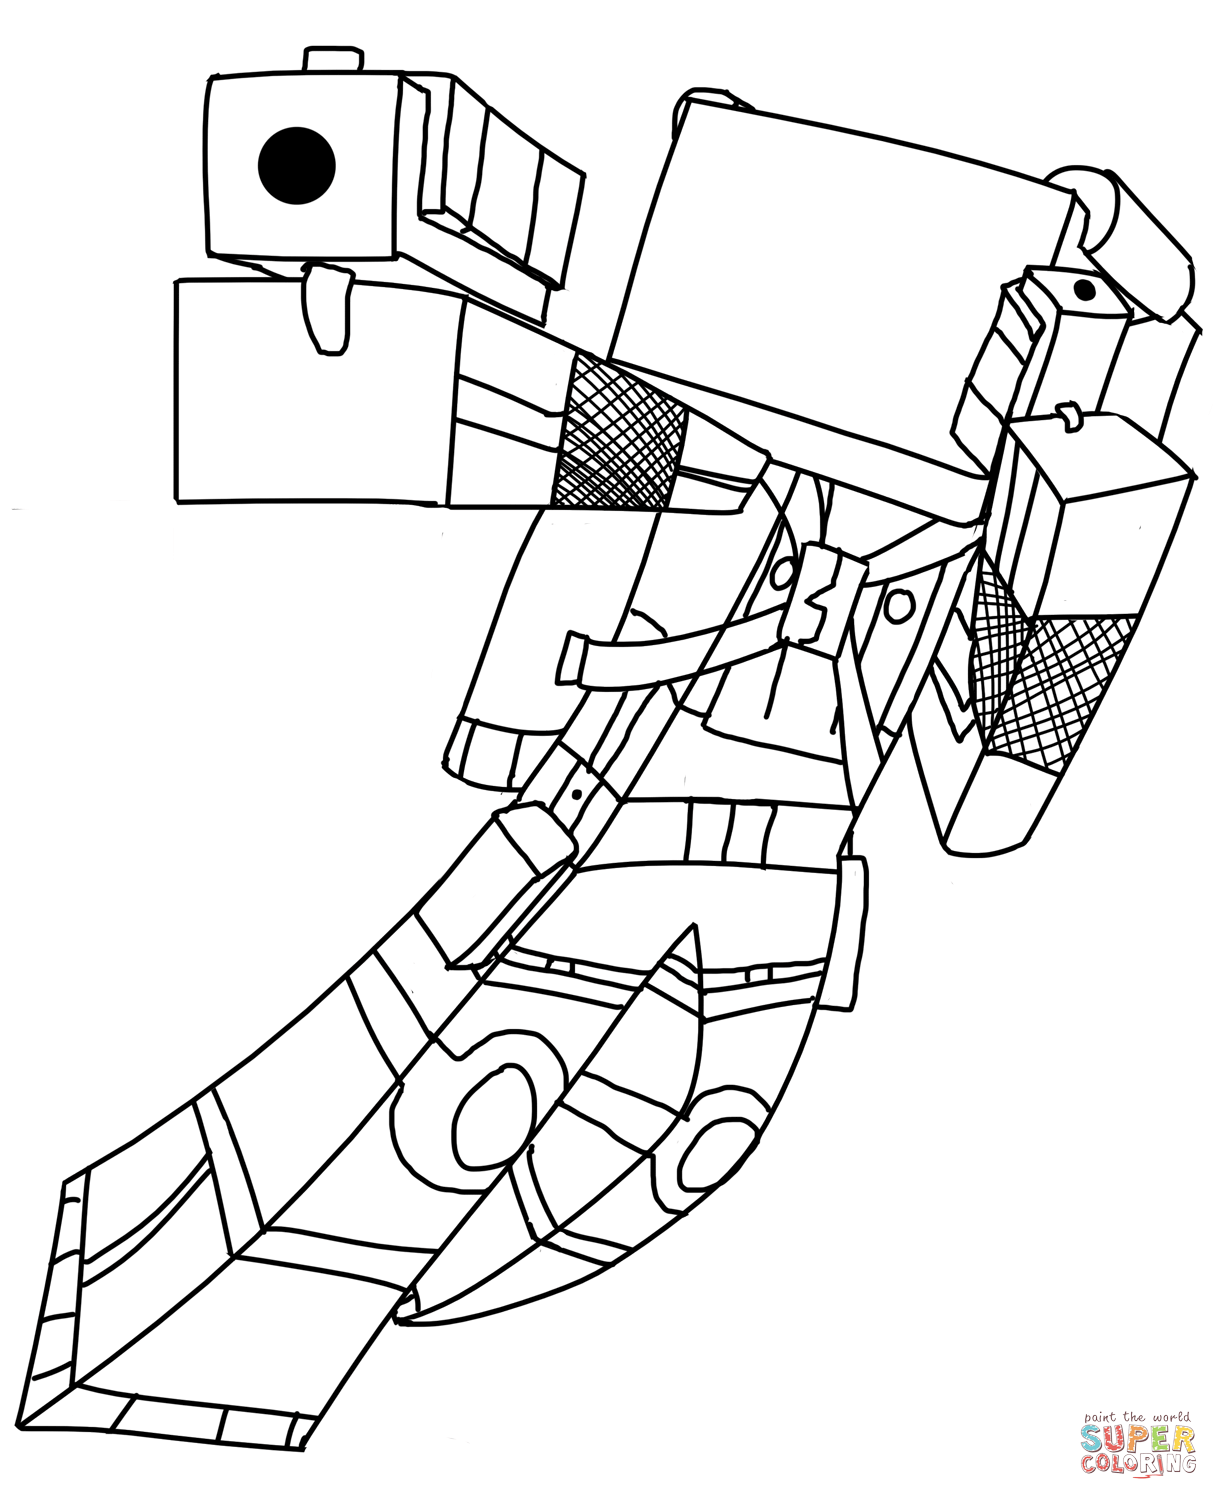 mindcraft coloring sheets minecraft coloring pages enderman at getcoloringscom sheets mindcraft coloring